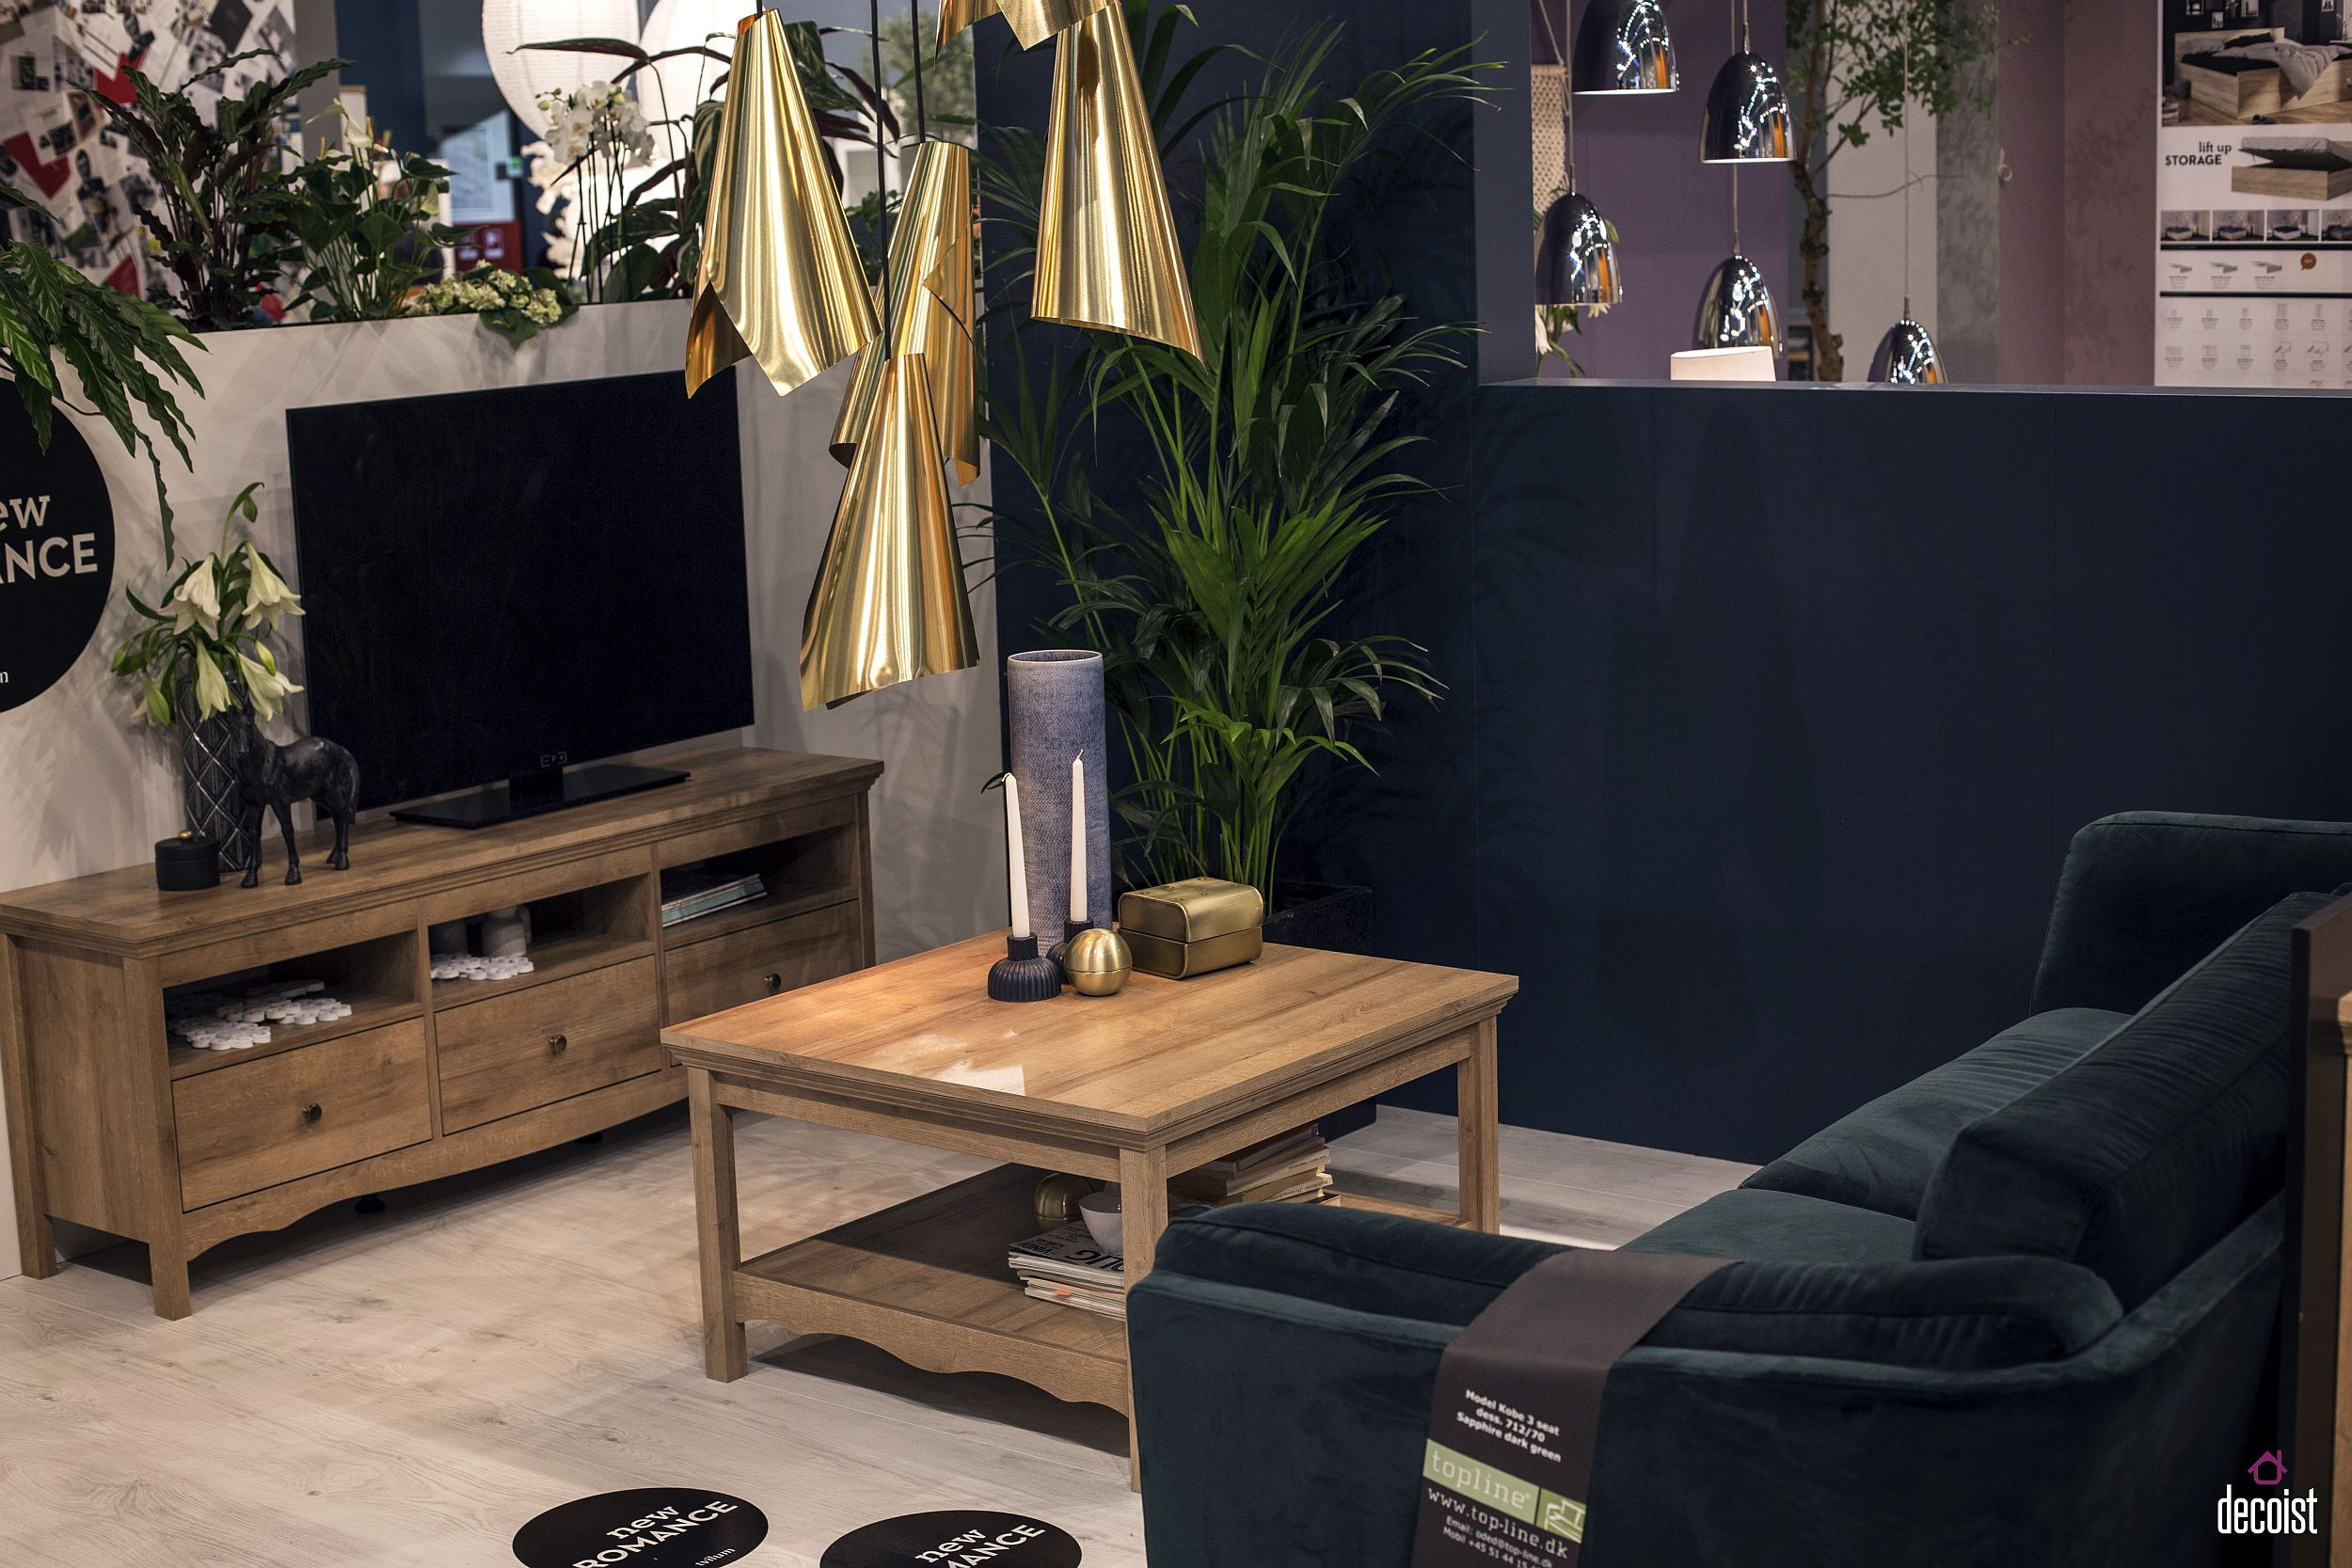 tv stand living room bench for tastefully space savvy 25 units that wow small decorating idea with a and comfy couch